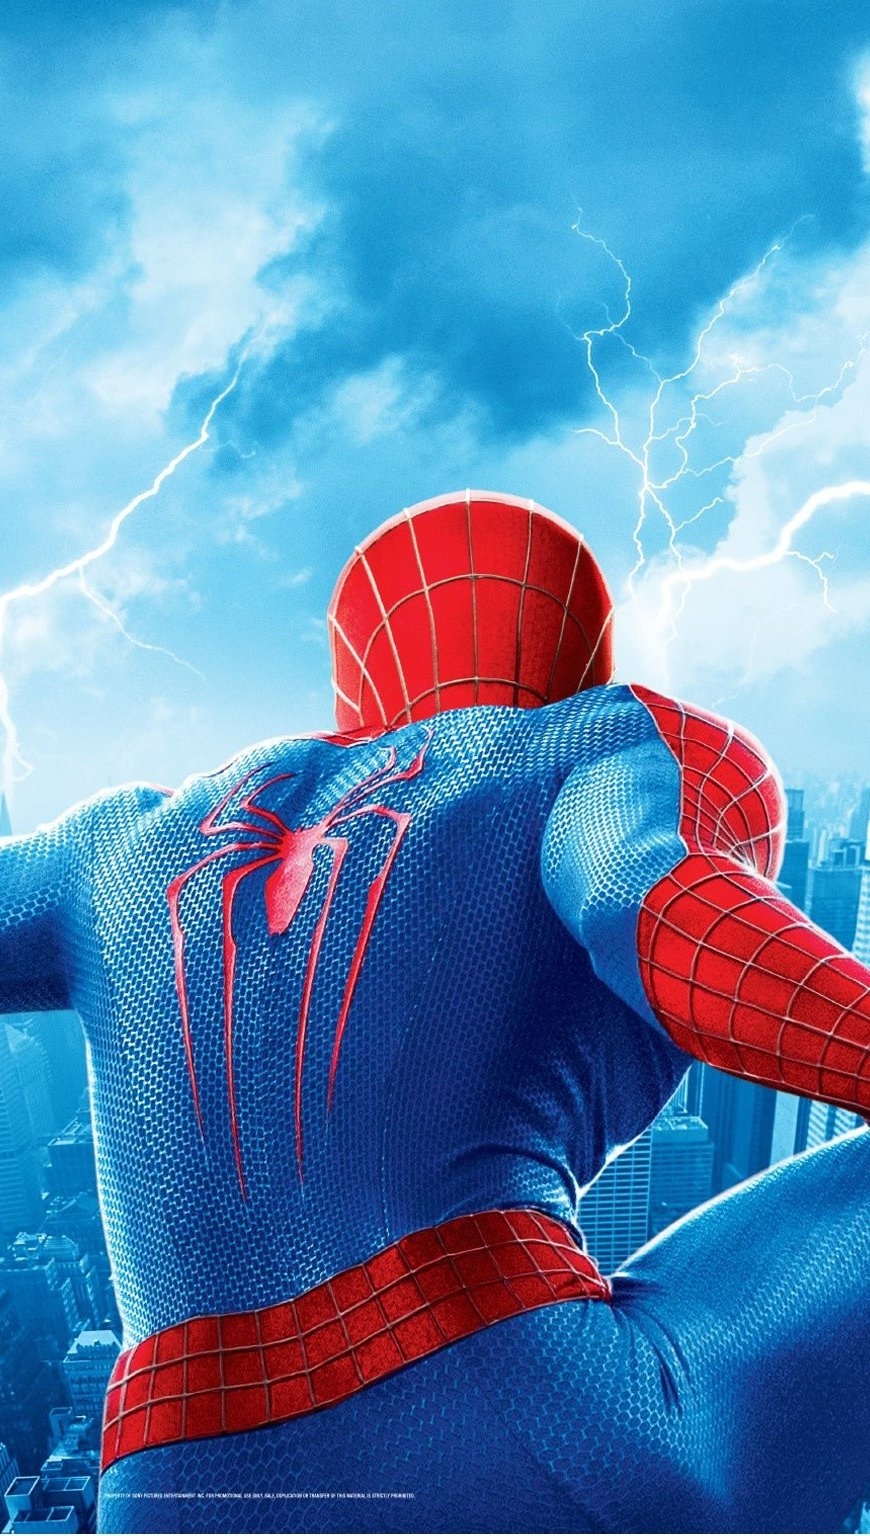 Wallpaper The amazing spider man 2 Vertical